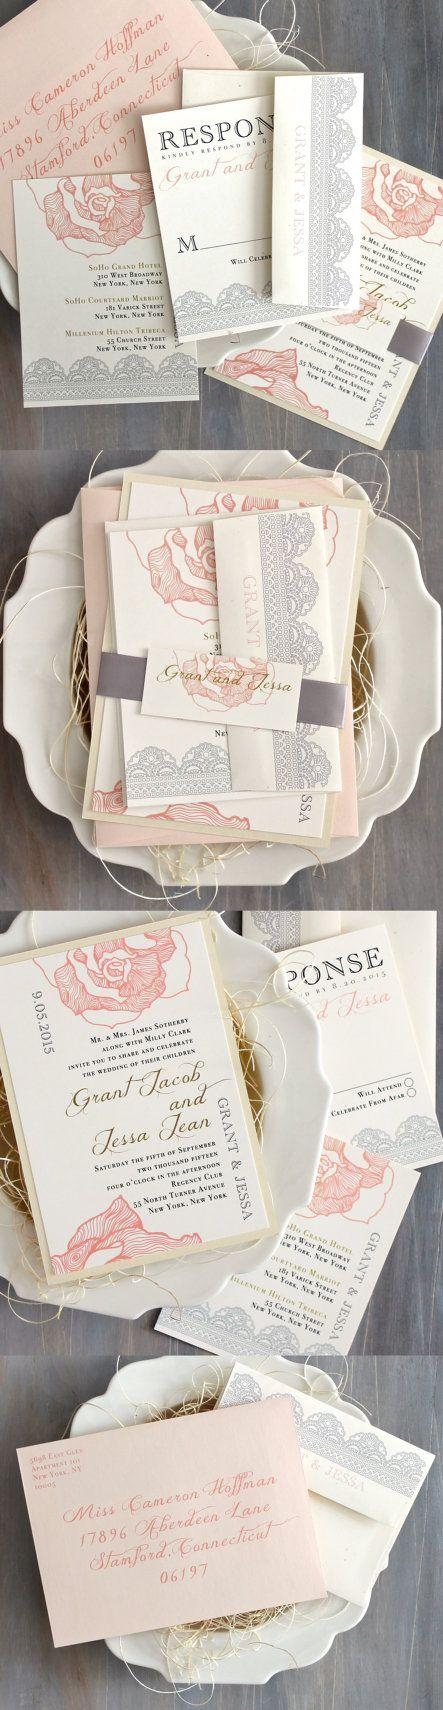 "زفاف - Lace Wedding Invitation, Blush Peach, Pink Wedding Invitations, Romantic Invites - ""Ruffled Romance"" Sample"